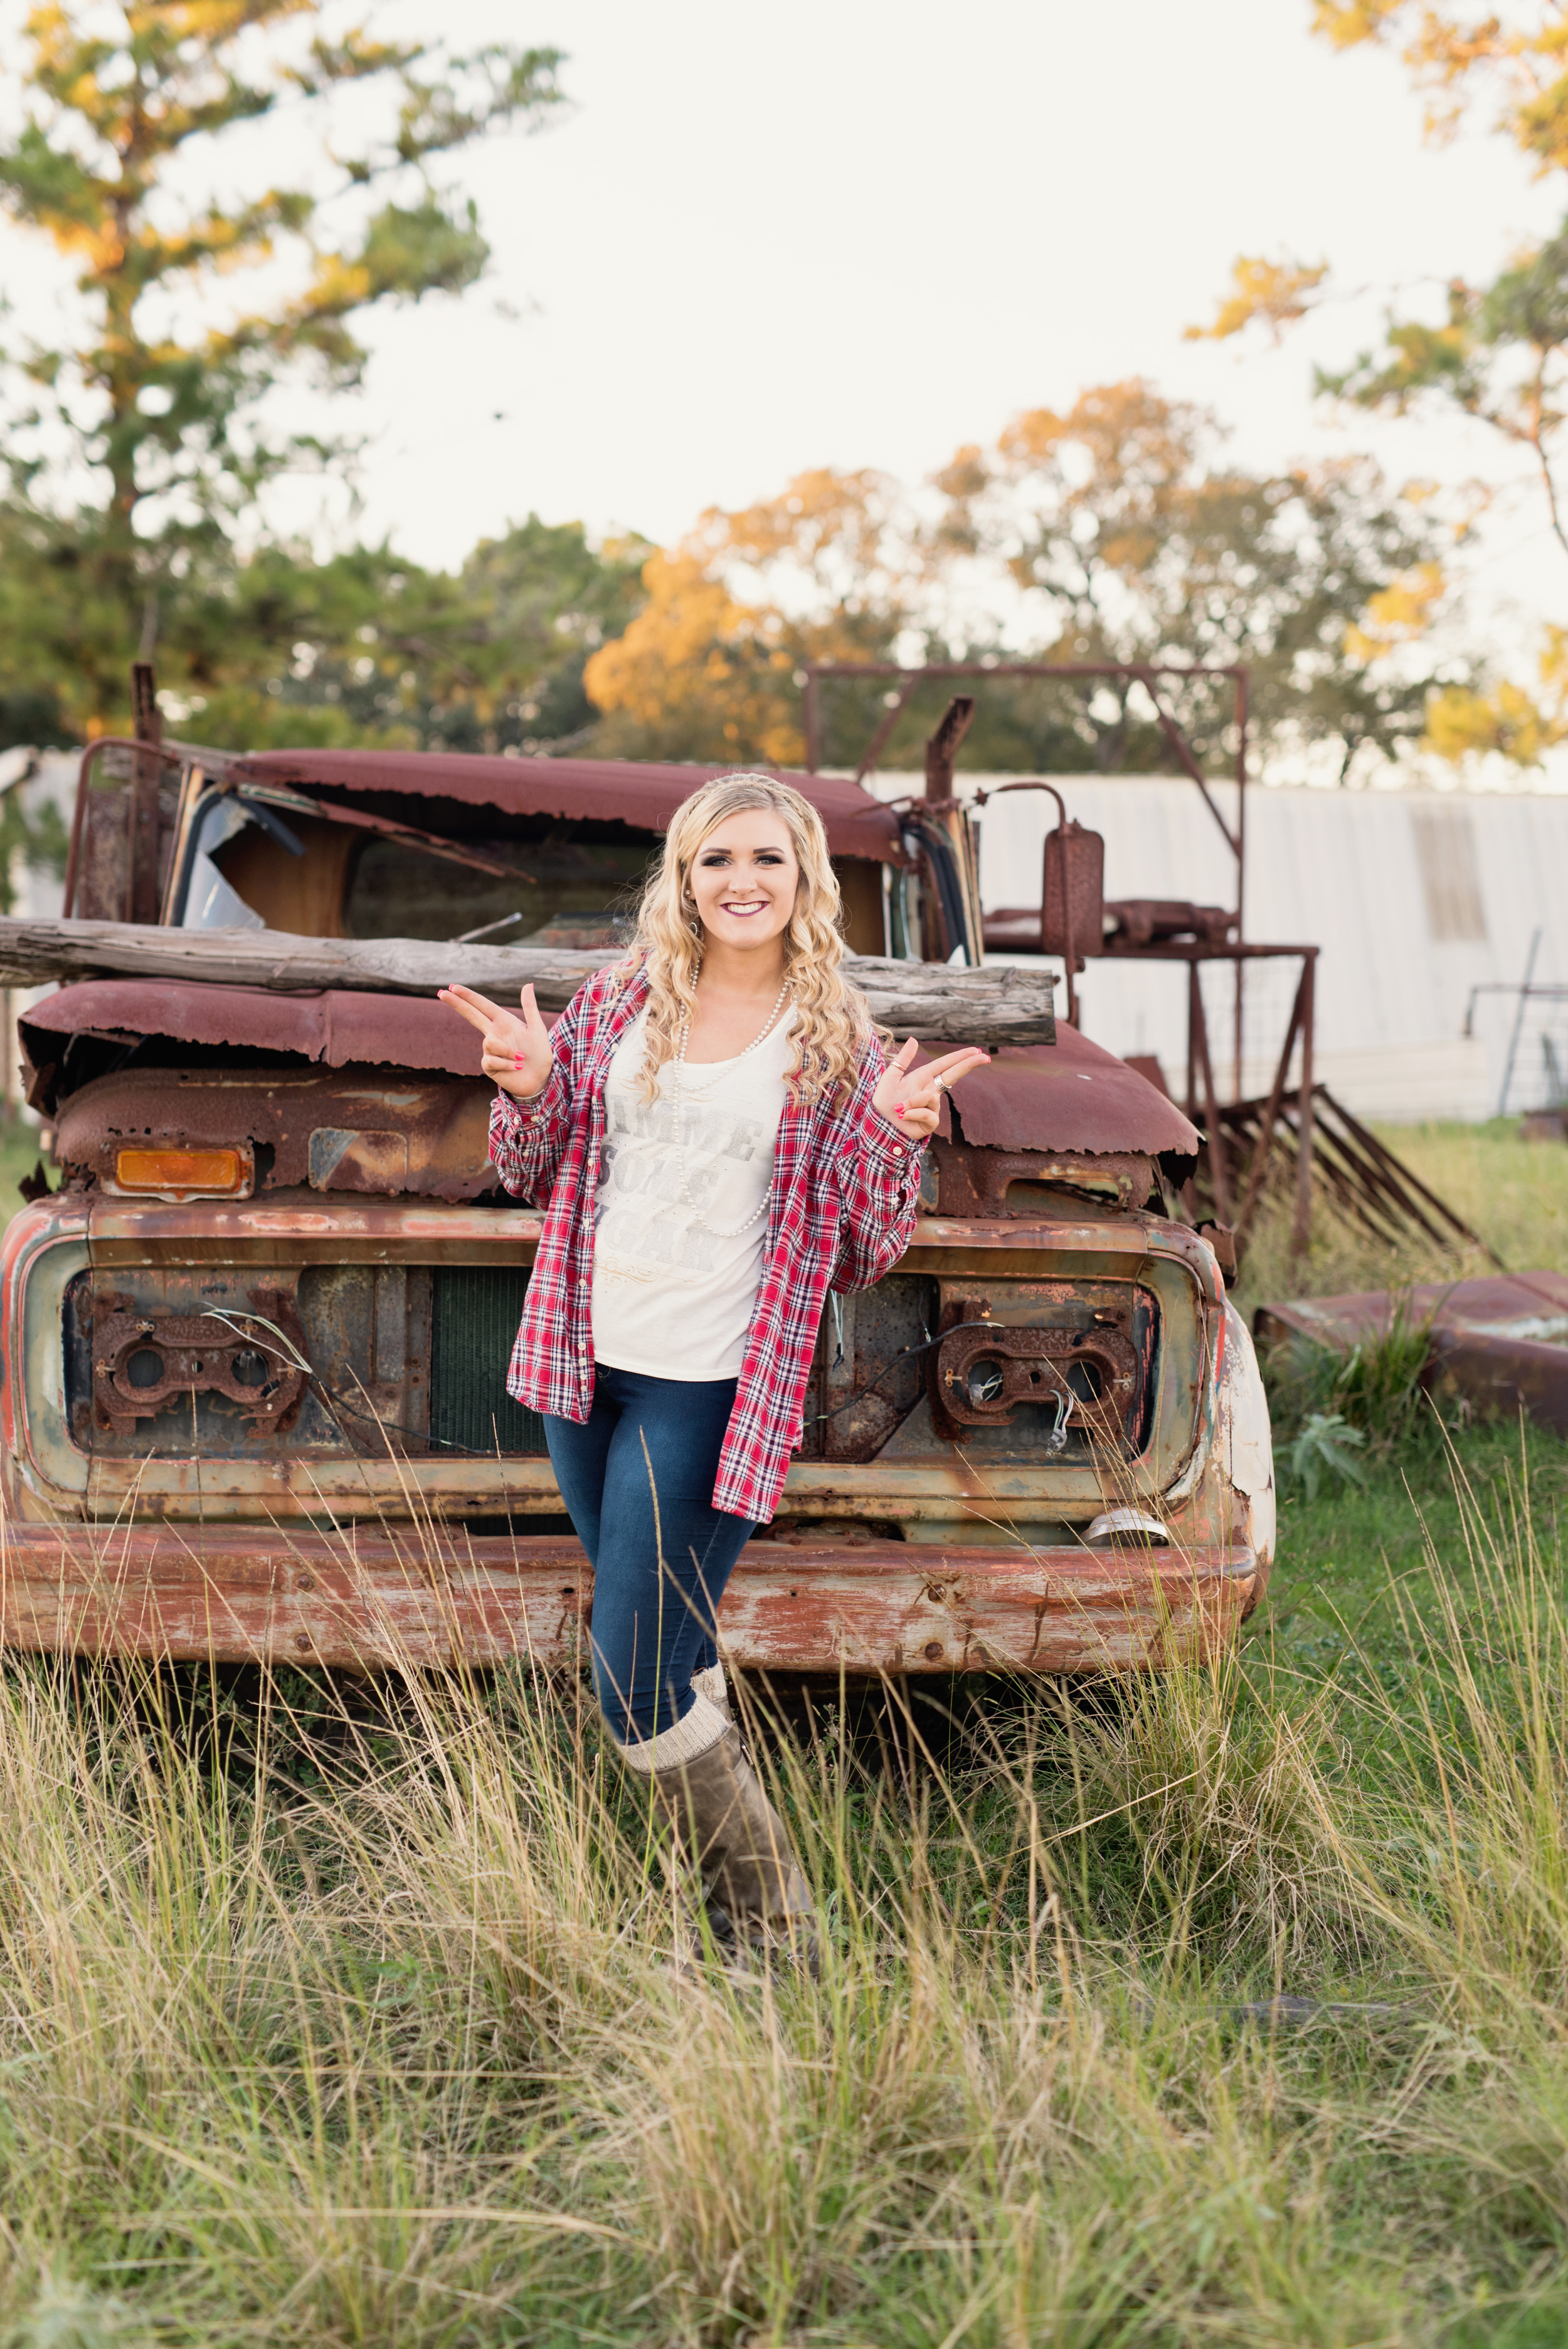 Tarleton State Senior Photo with rusty old truck